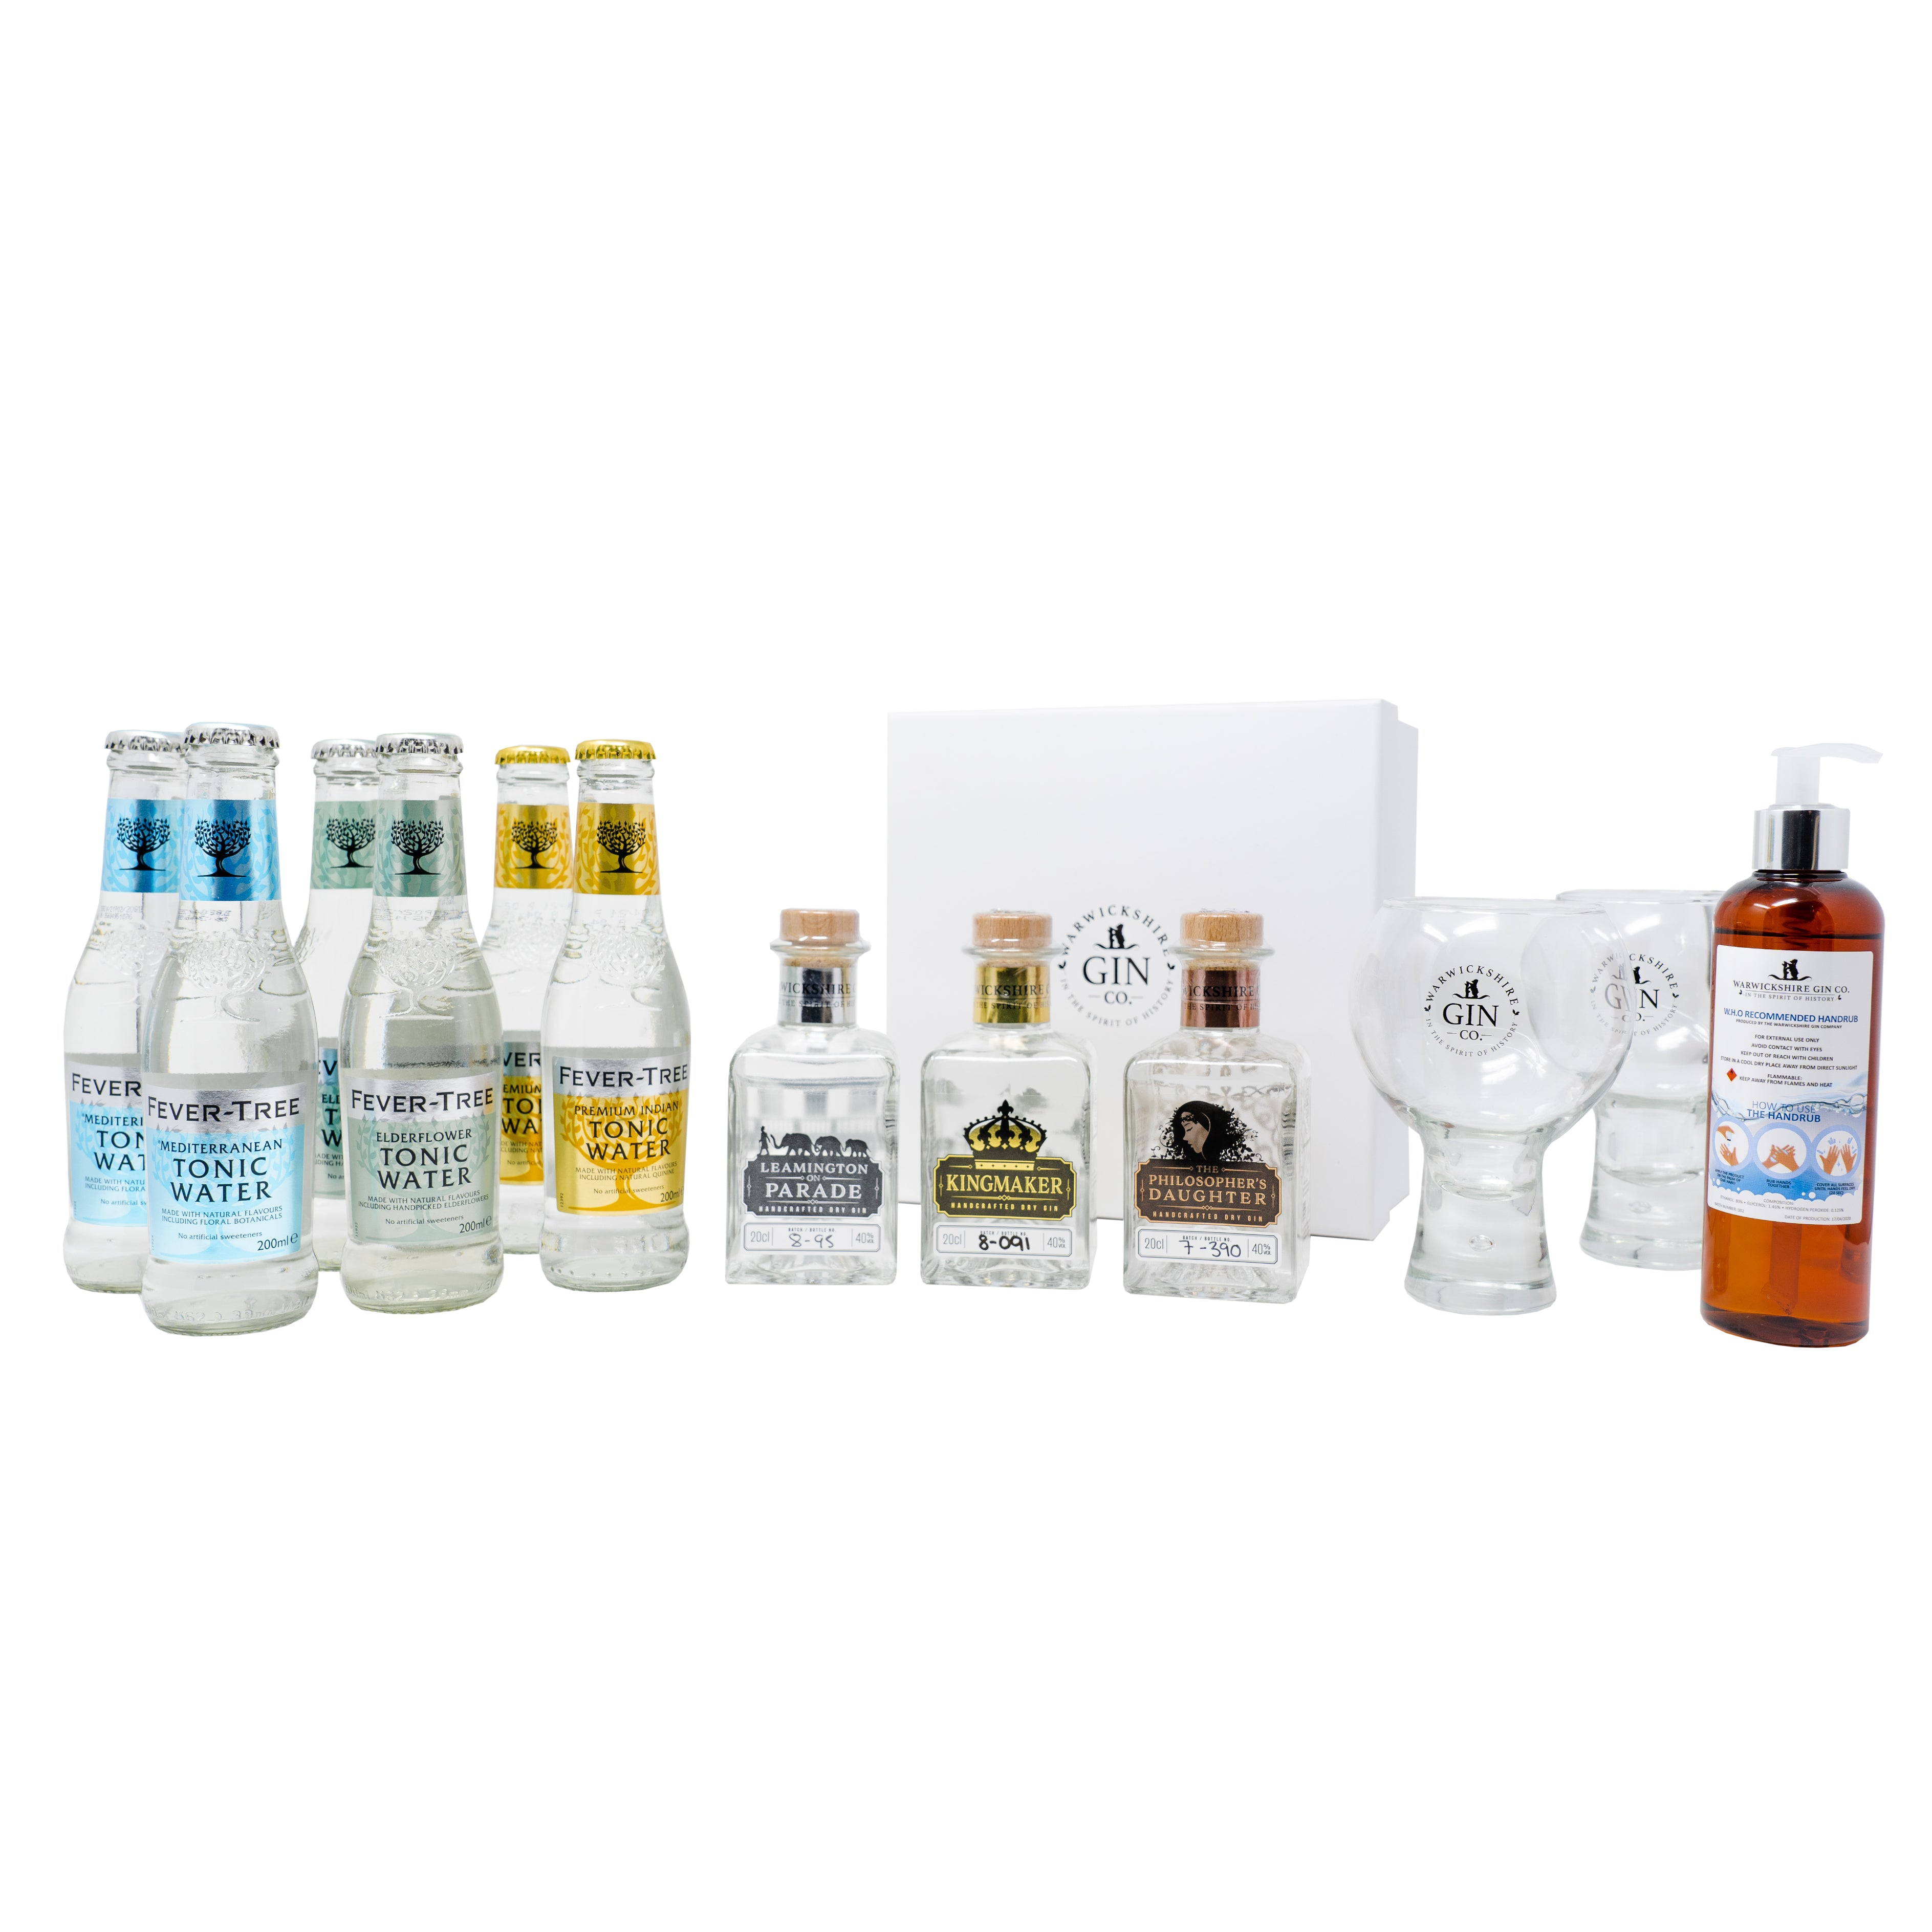 Stay safe at home G&T - Gold package